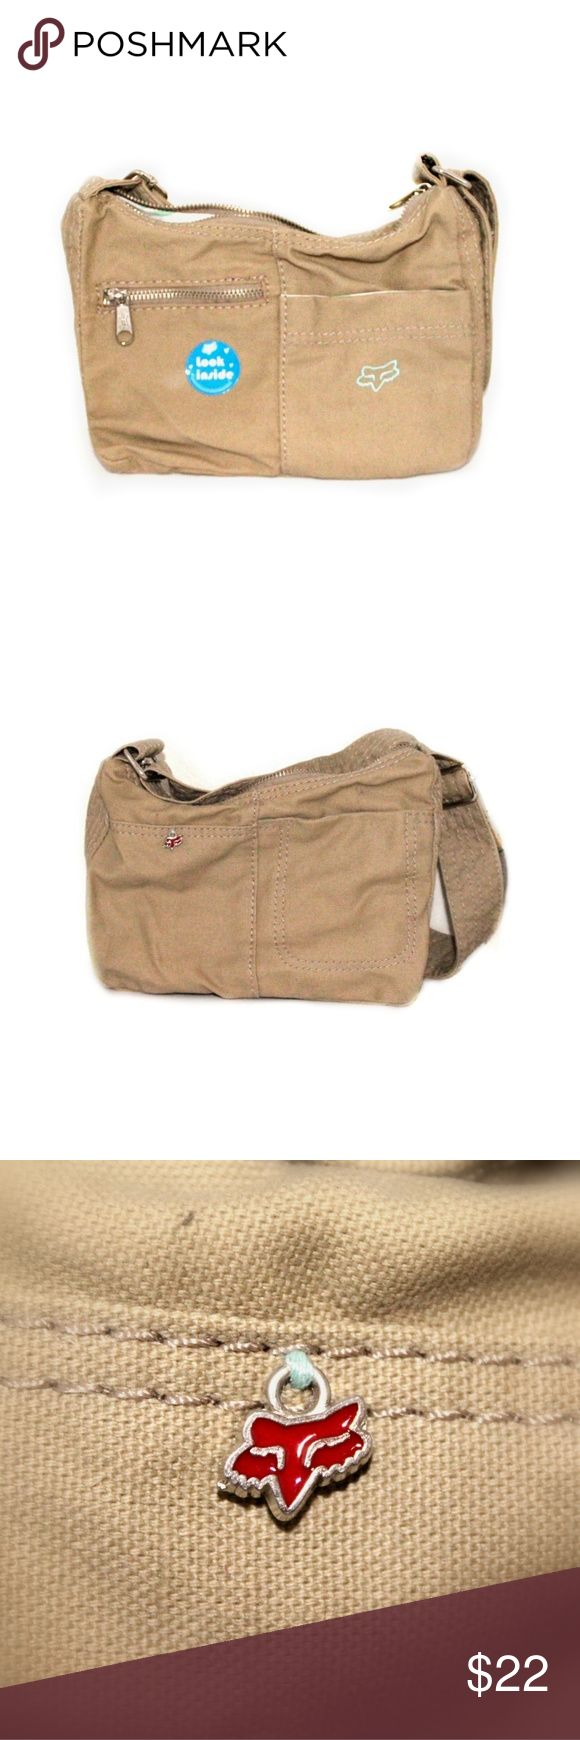 FOX Womens Canvas Purse NWOT Whether you're on or off-road, this canvas utility purse from FOX will  leave you feeling foxy in all your endeavors. Constructed from sturdy canvas and completed with quaint detailing, this purse begs to be taken for a lap or two. FOX RIDERS CO. Bags Mini Bags